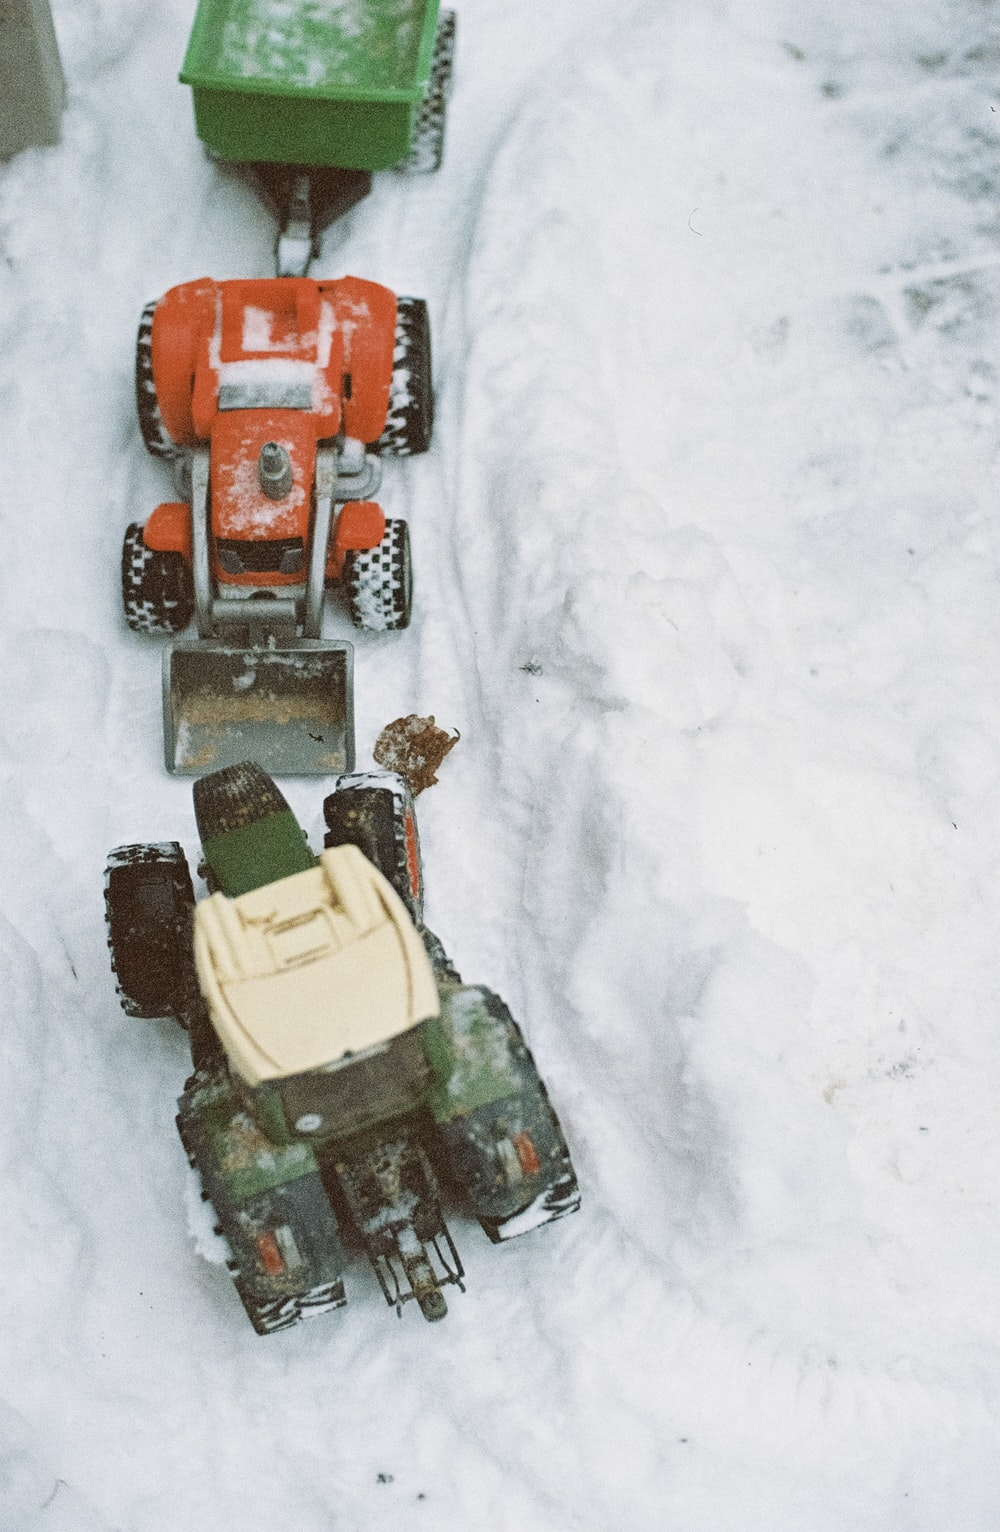 three red vehicle toys on snow